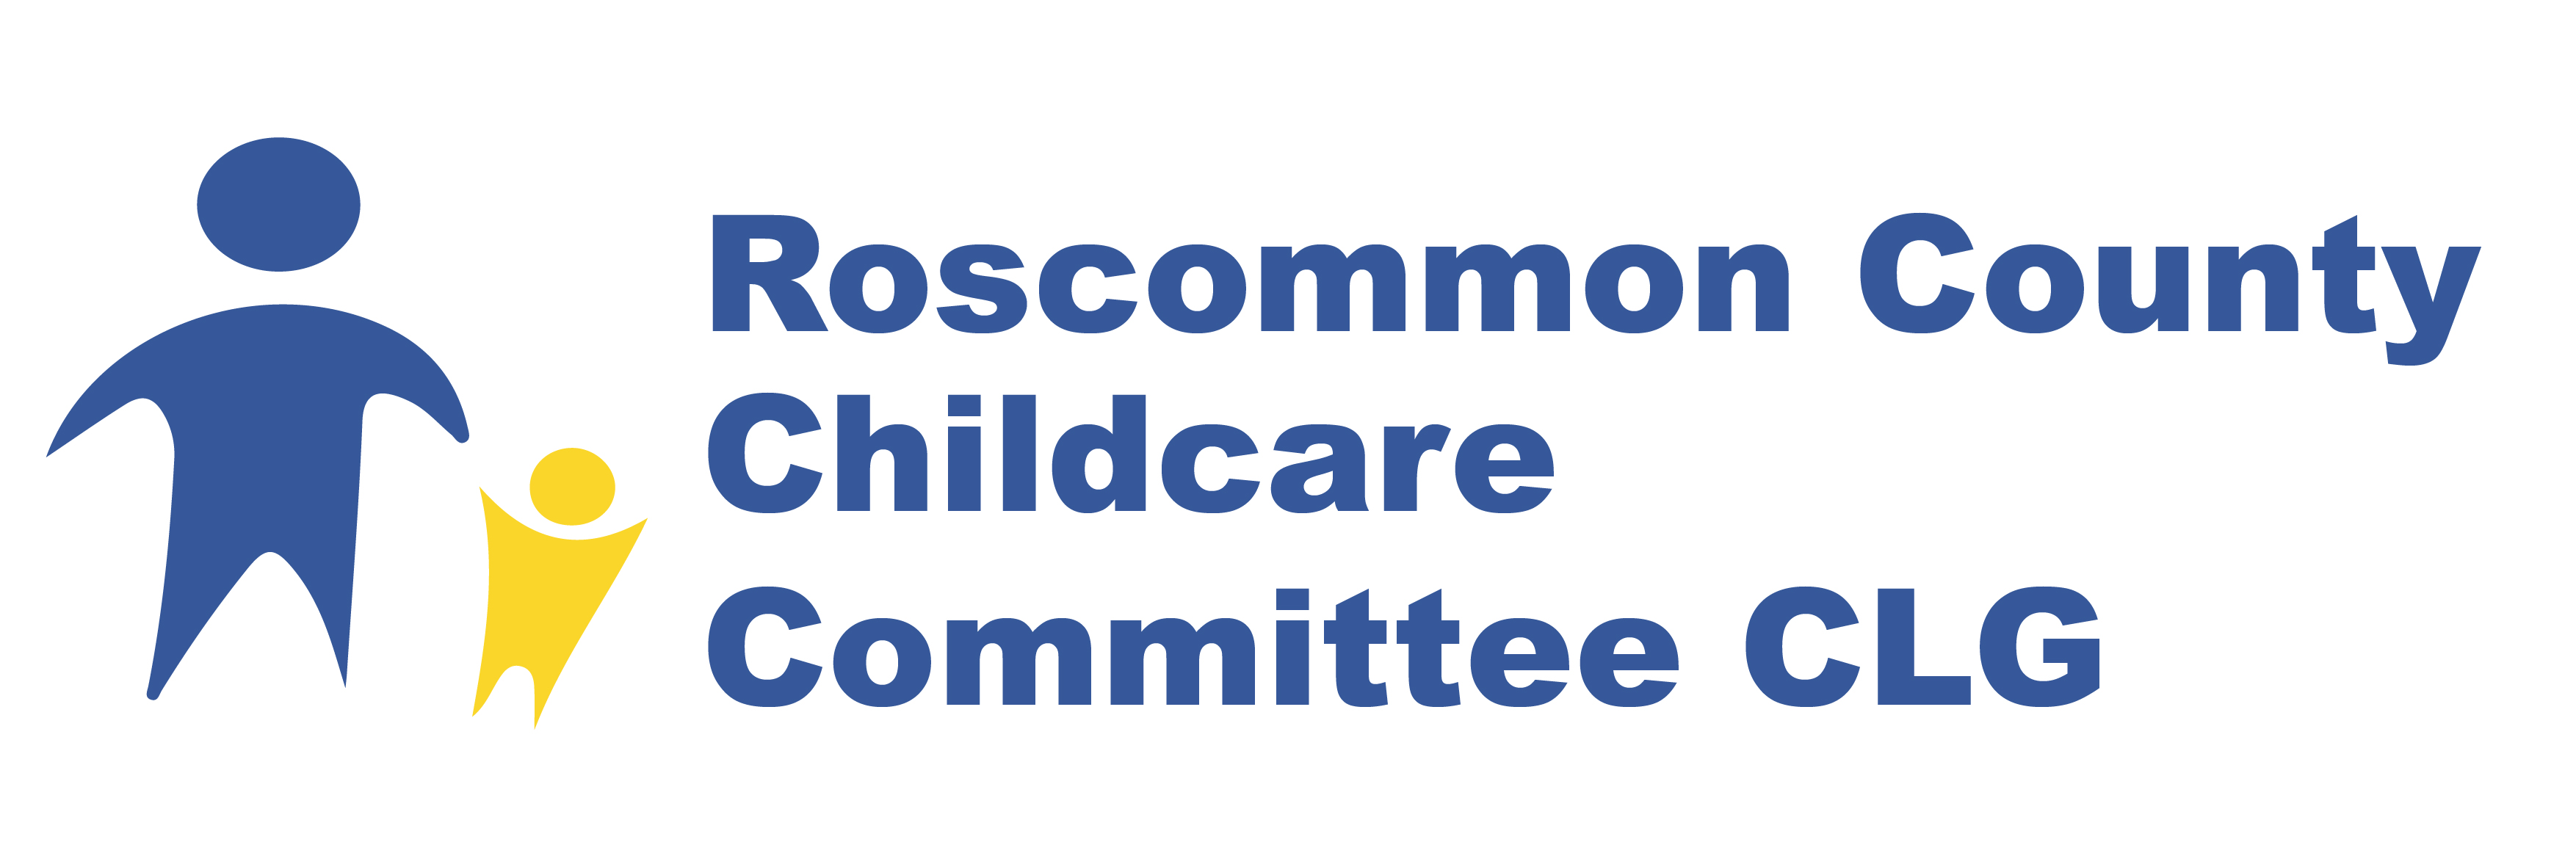 Roscommon Childcare Committee